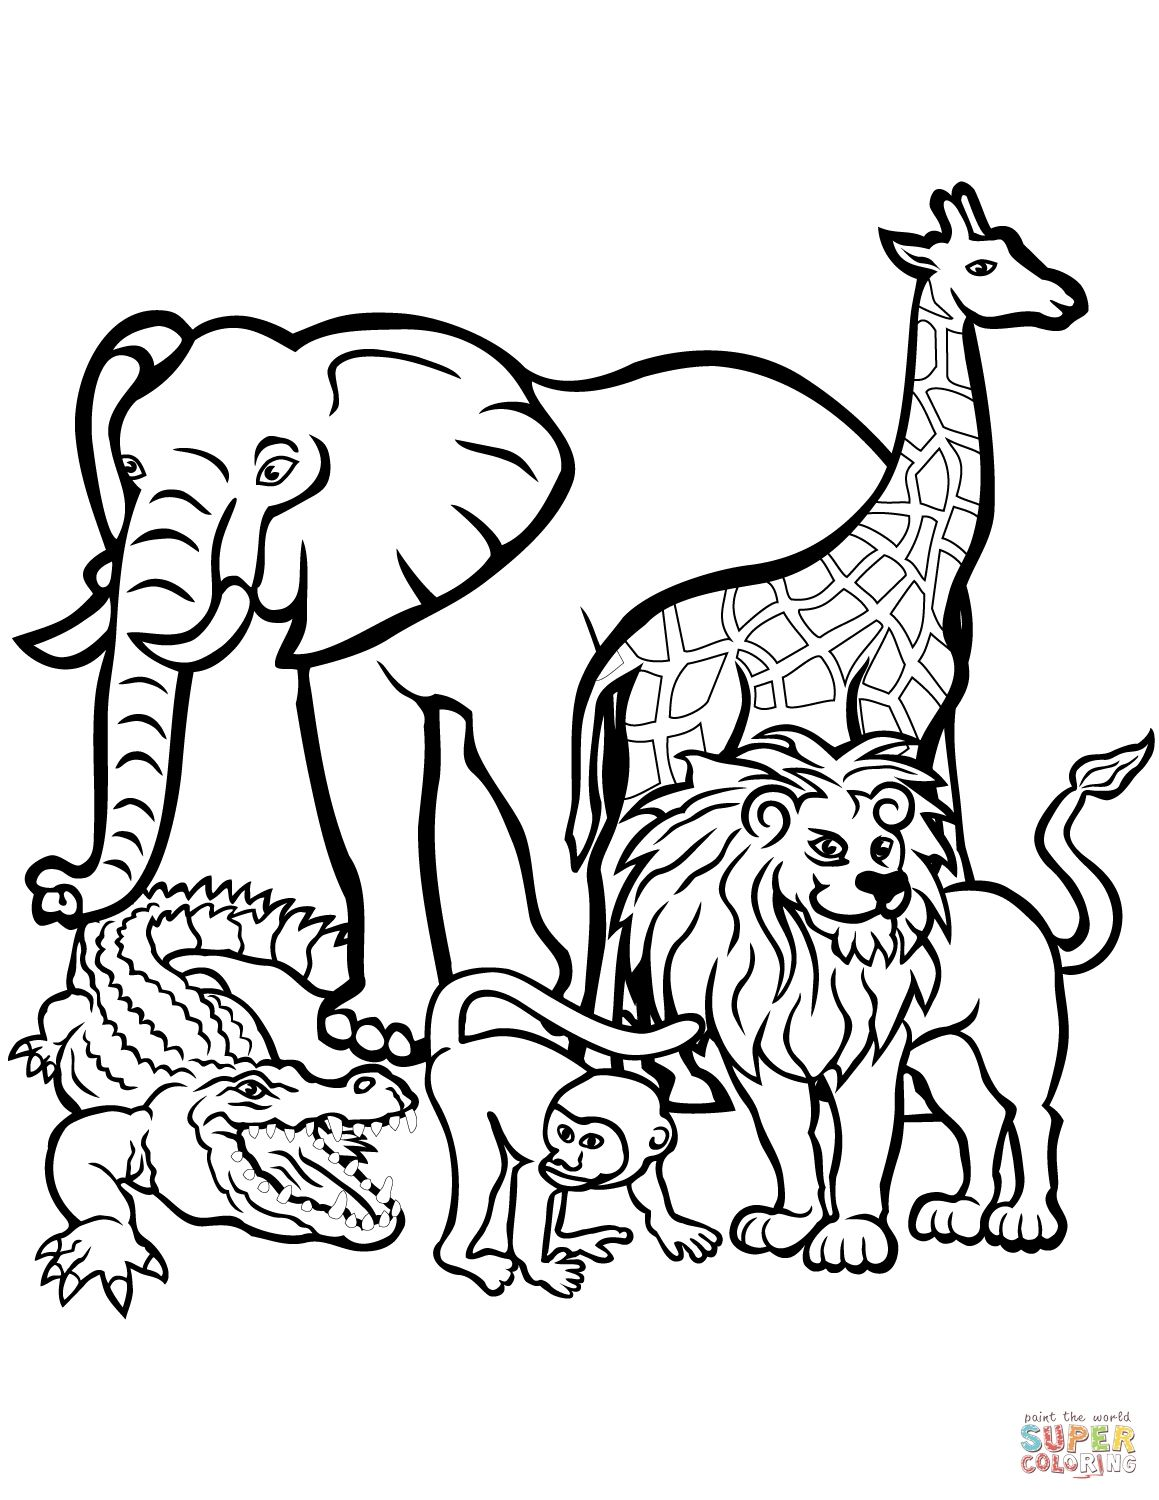 zoo animals coloring pictures zoo animals free colouring pages animals zoo coloring pictures